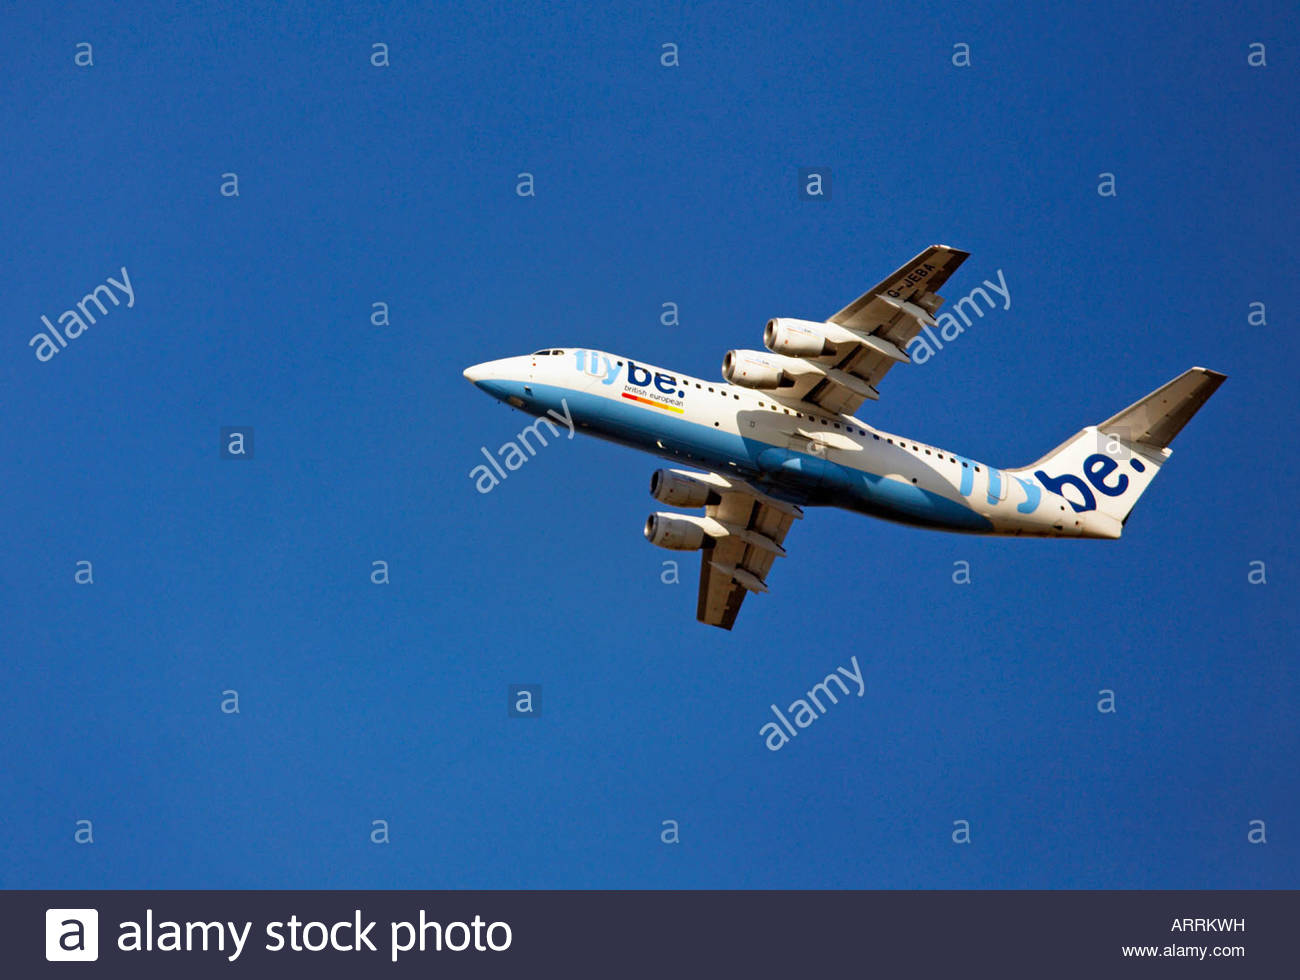 Flybe flight shortly after takeoff - Stock Image